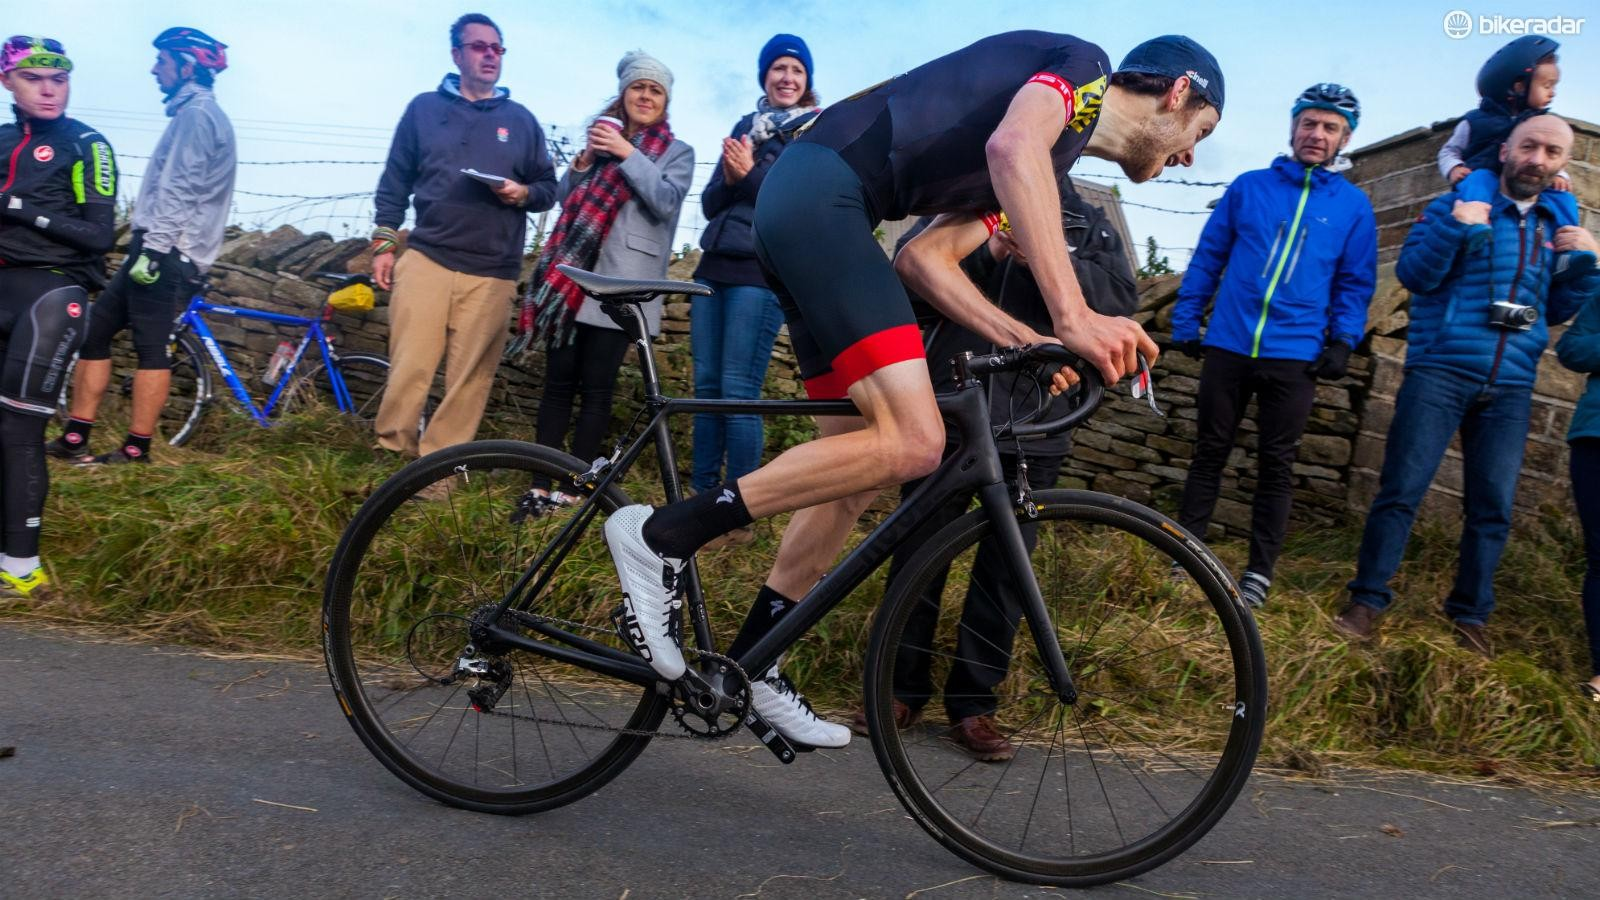 Hills are an unavoidable part of cycling, so do yourself a favour and learn how to ride them